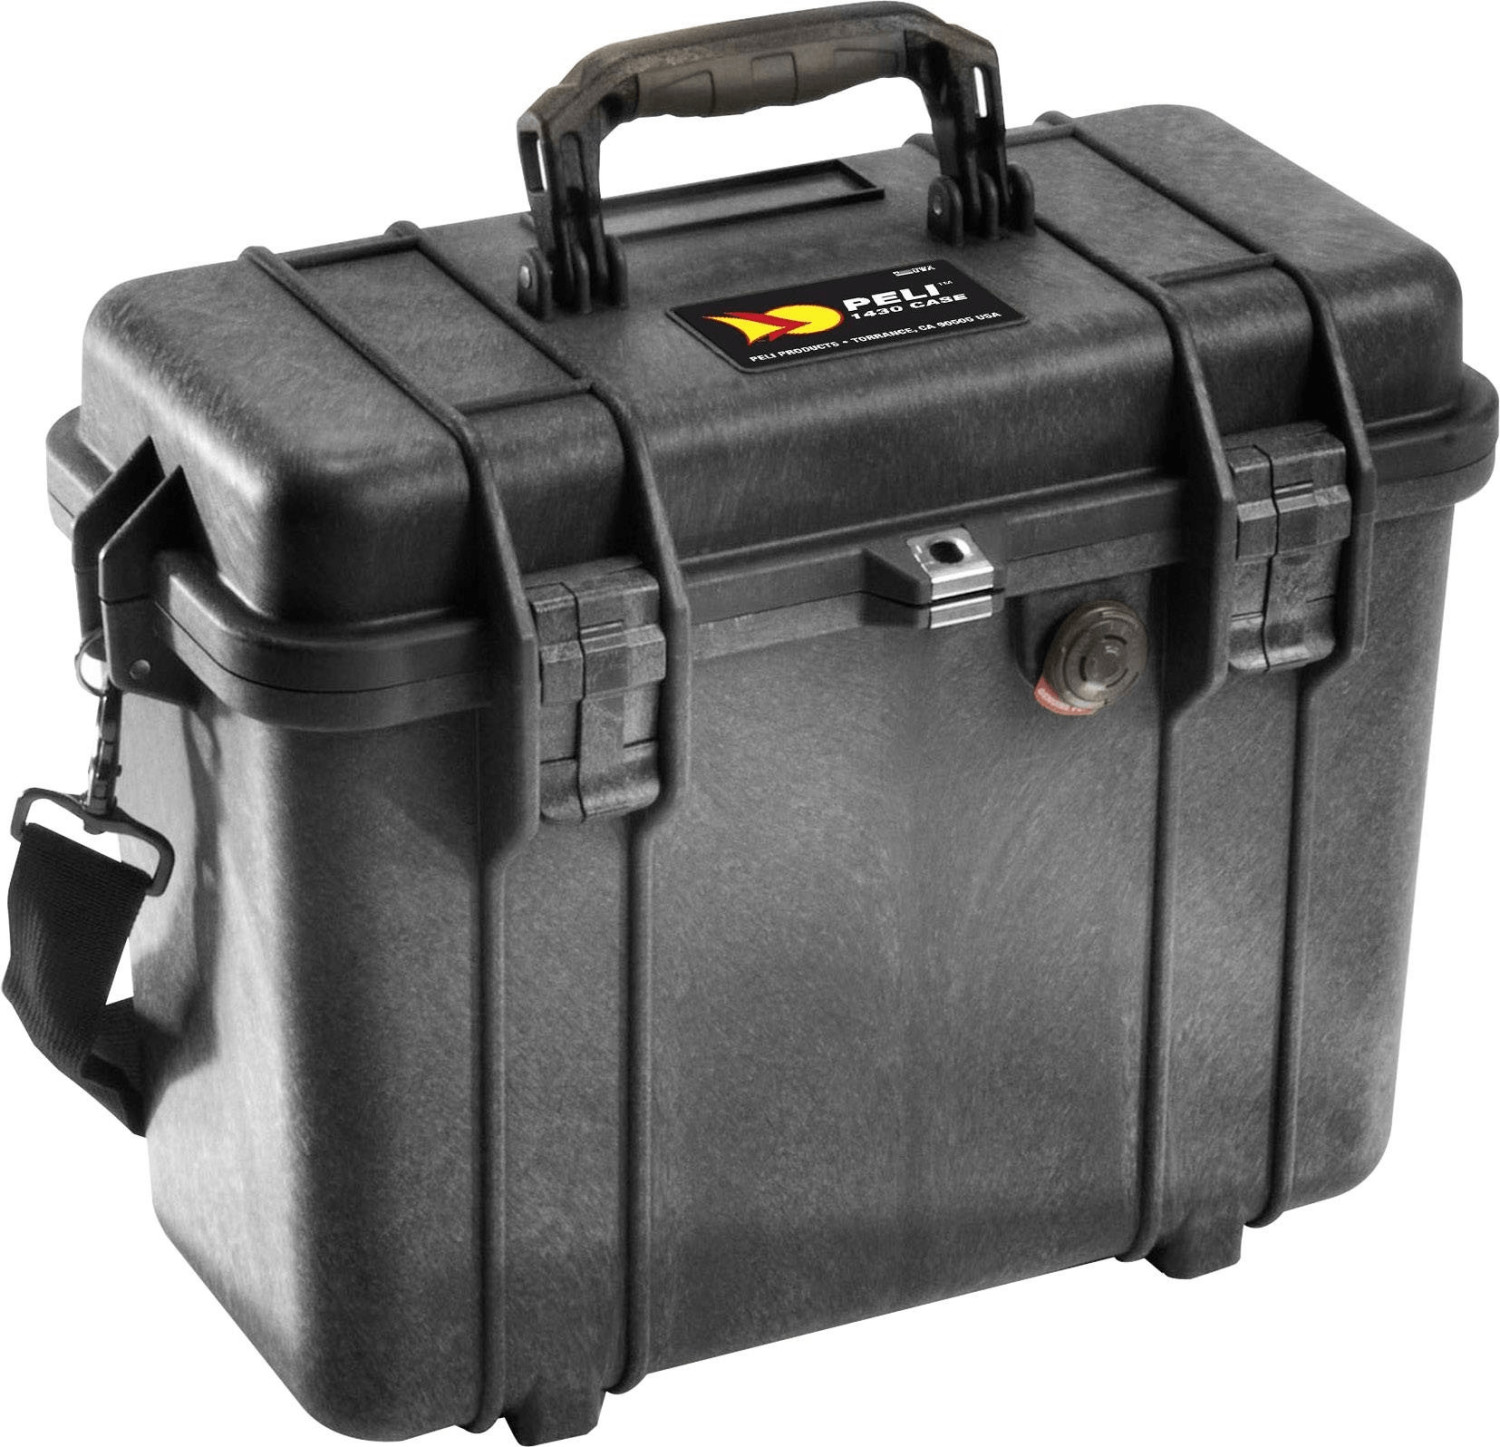 Peli Top Loader Case 1430